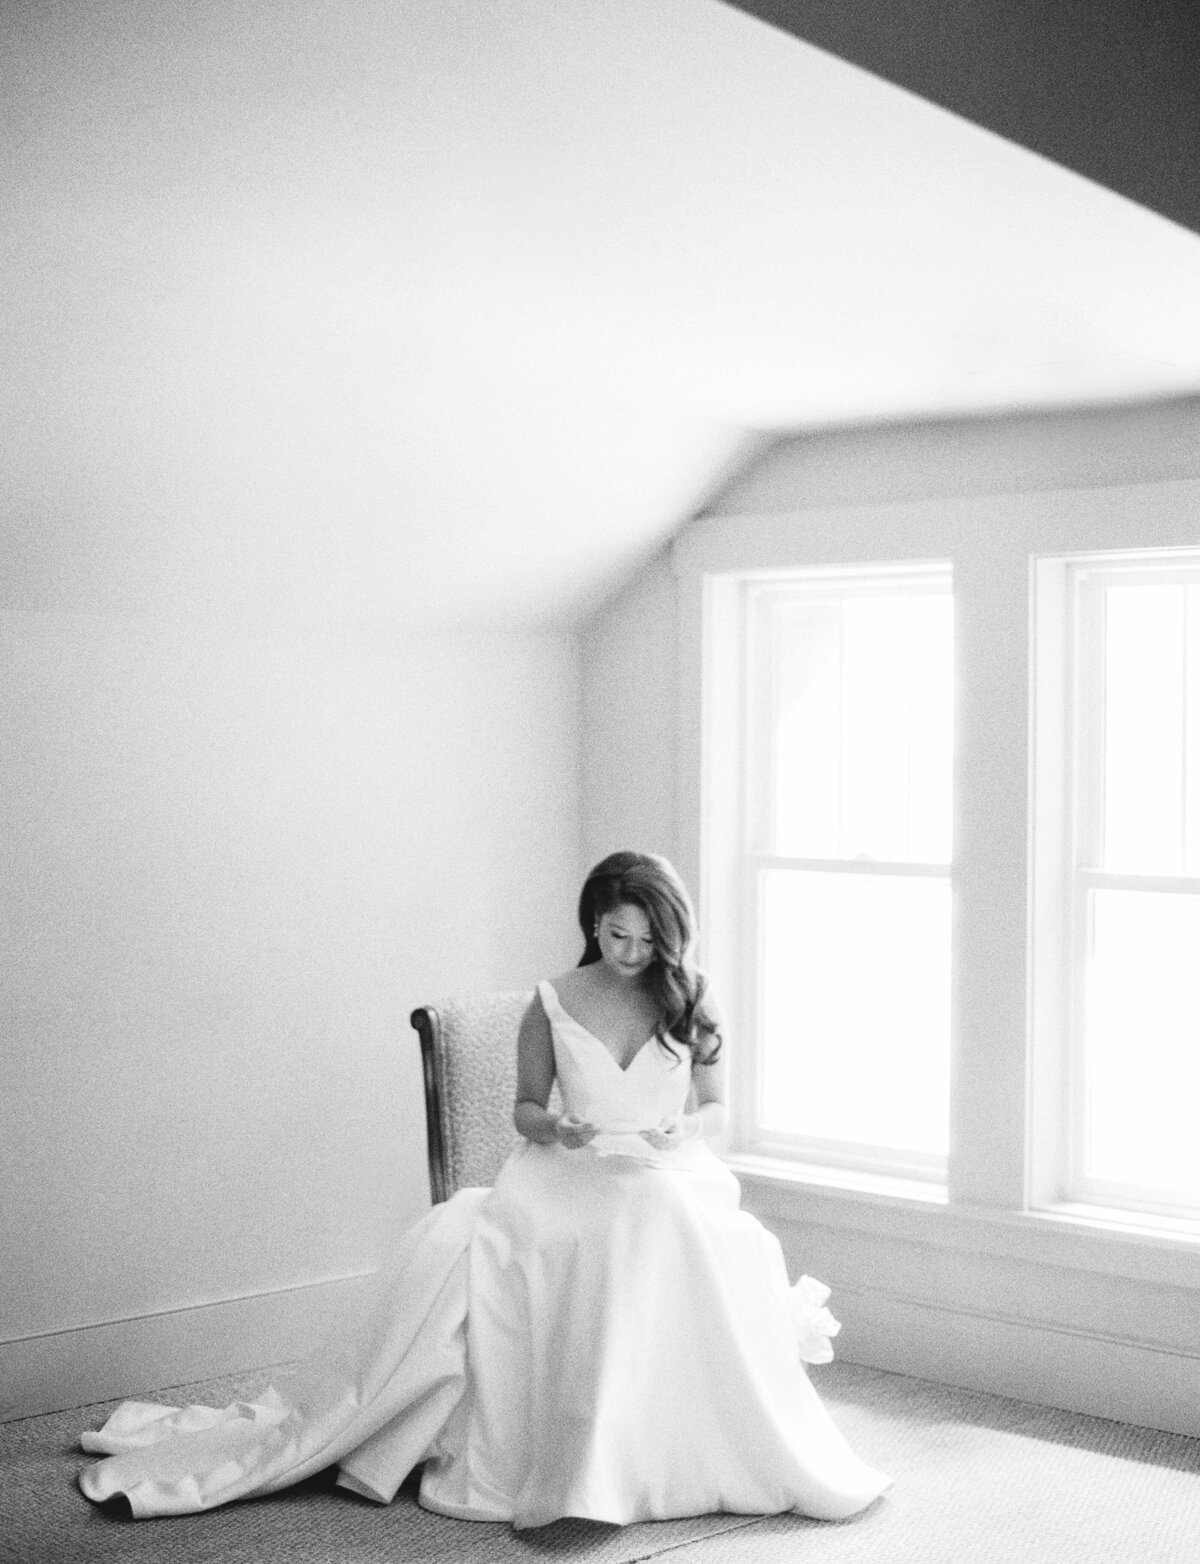 7_AmandaOliviaPhotography_Dina+Paul_Wedding_SneakPeeks-1788